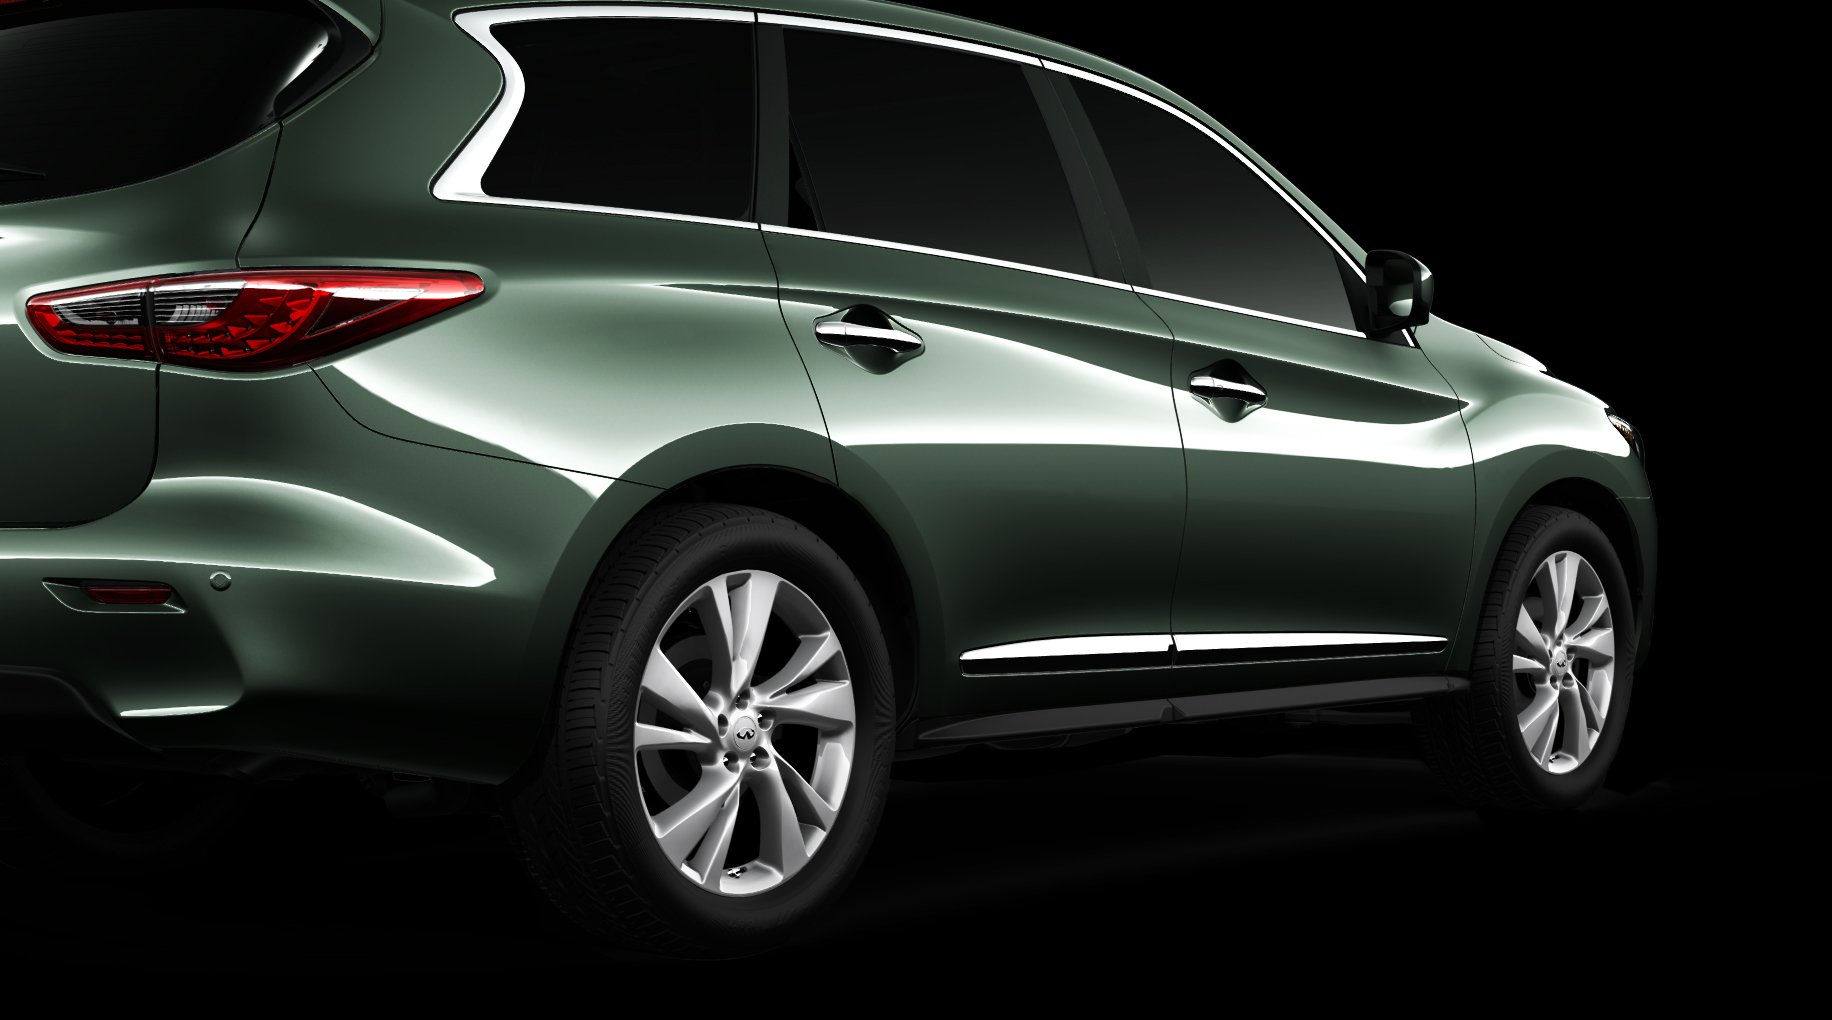 2010 infiniti jx choice image hd cars wallpaper 100 hot cars infiniti jx the vanachro choice image vanachro Image collections